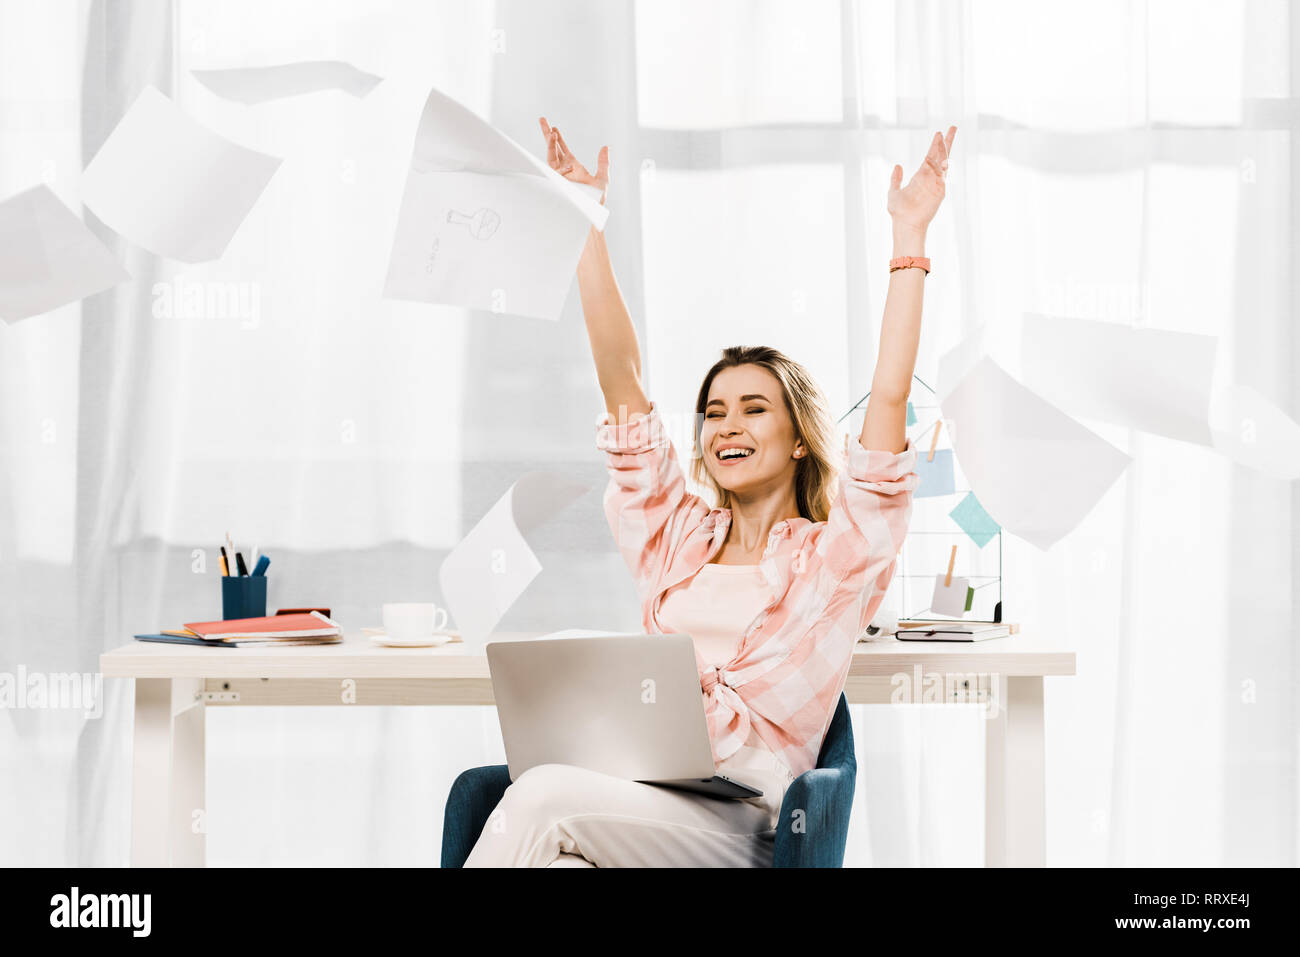 Laughing woman with laptop throwing out documents at workplace - Stock Image